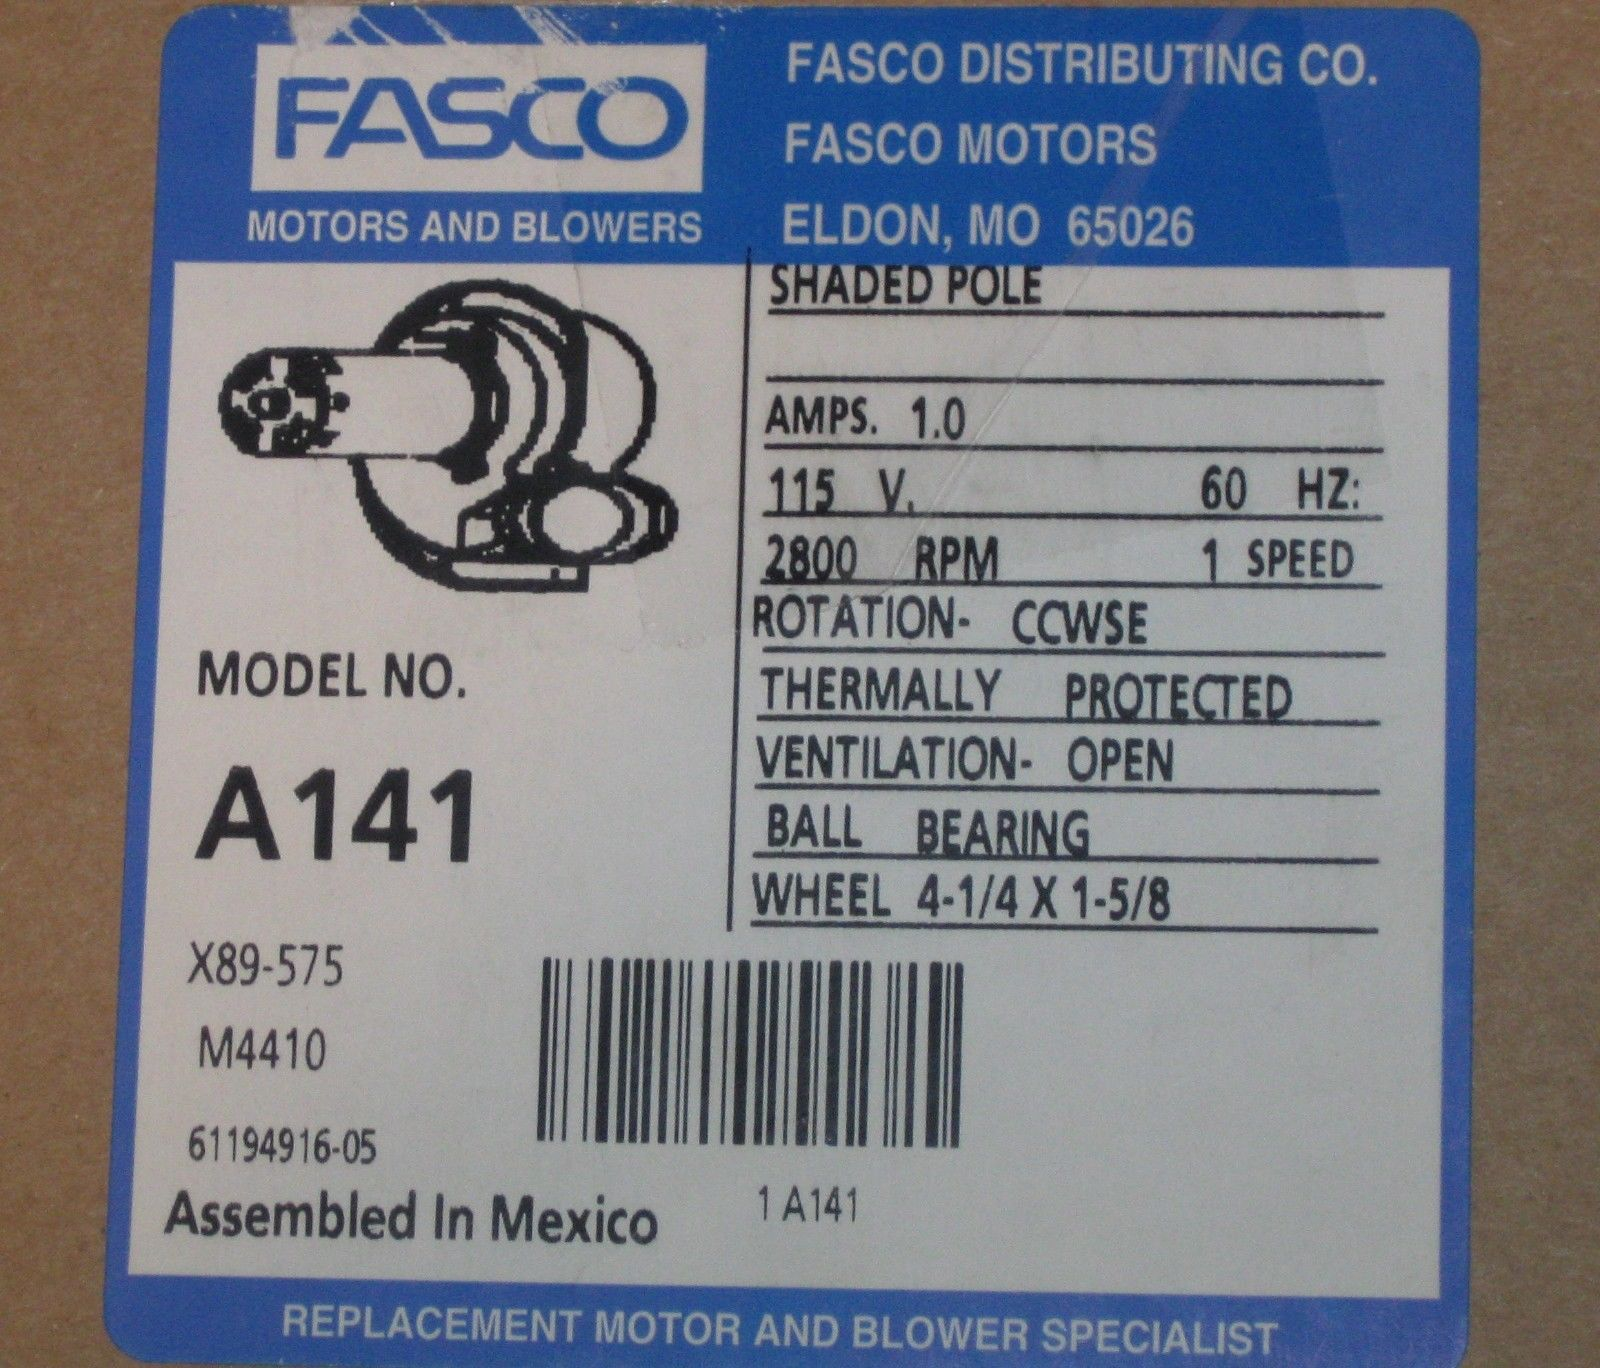 A141 Fasco Furnace Motor fits 7021-8741 7021-8742 7021-9188 7021 ...